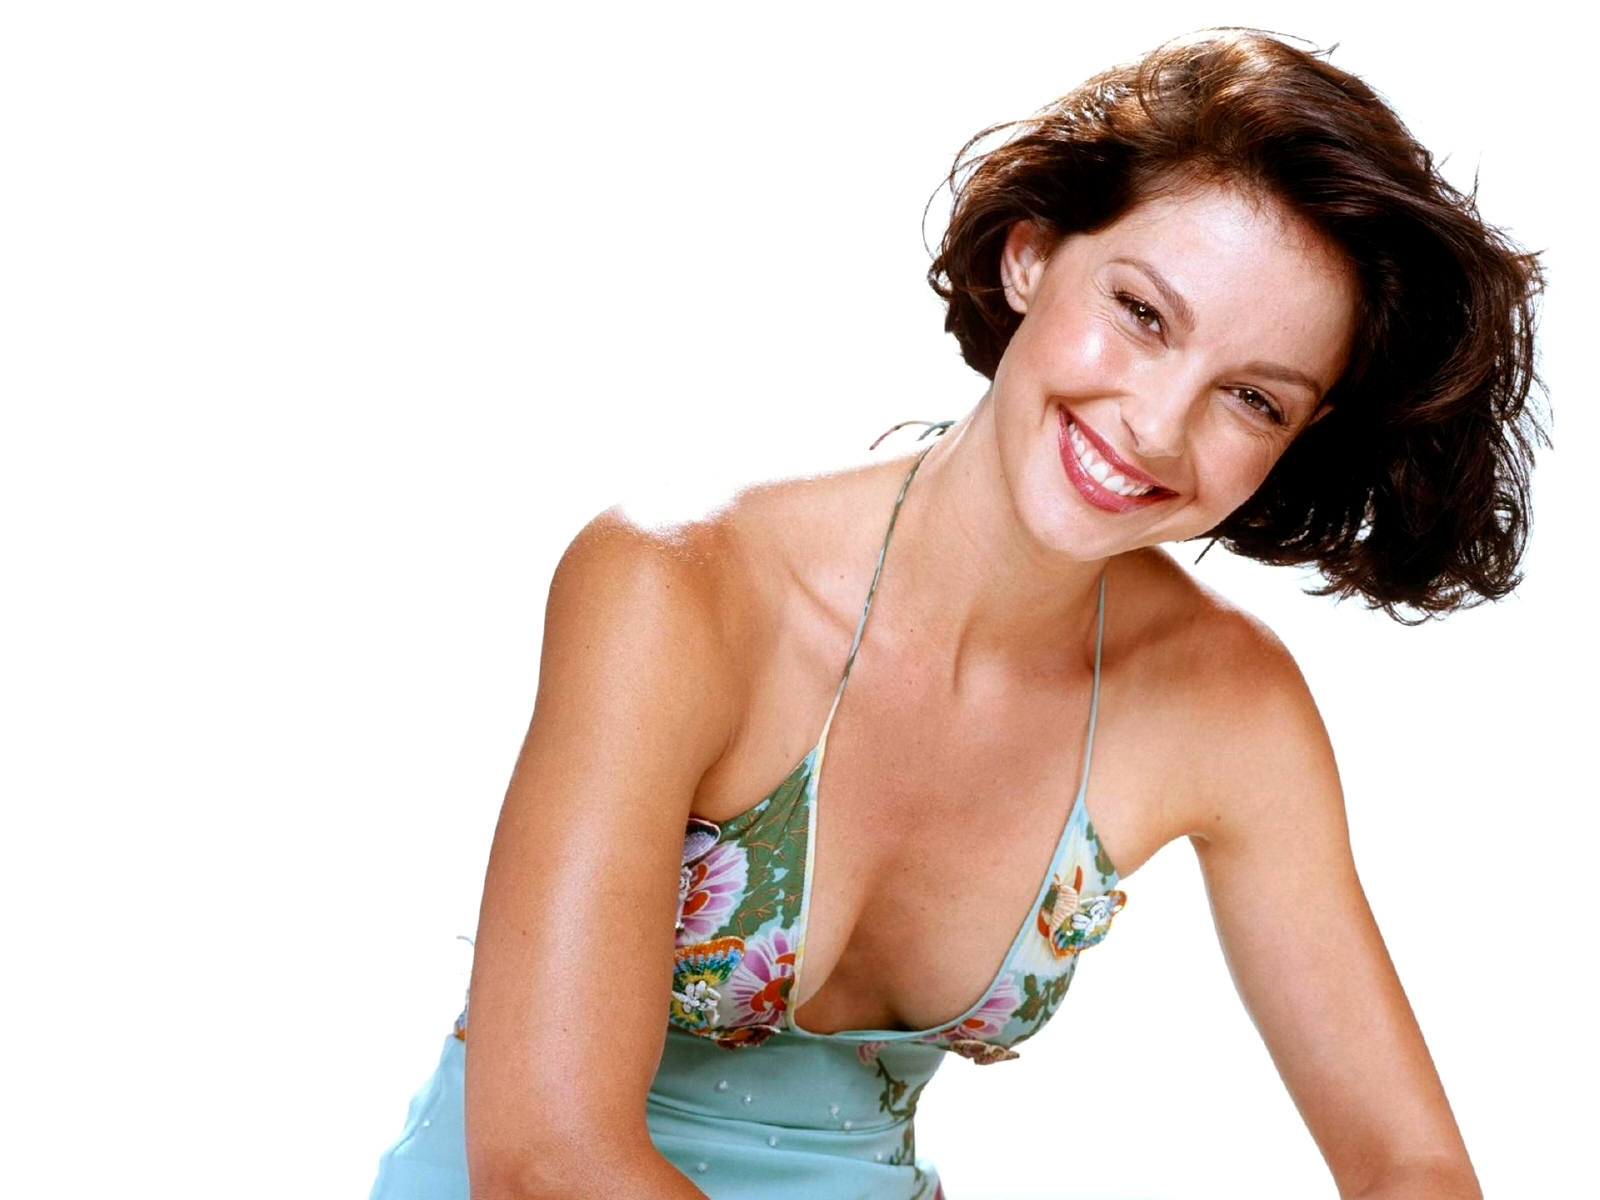 Ashley Judd hot hd wallpapers - HIGH RESOLUTION PICTURES